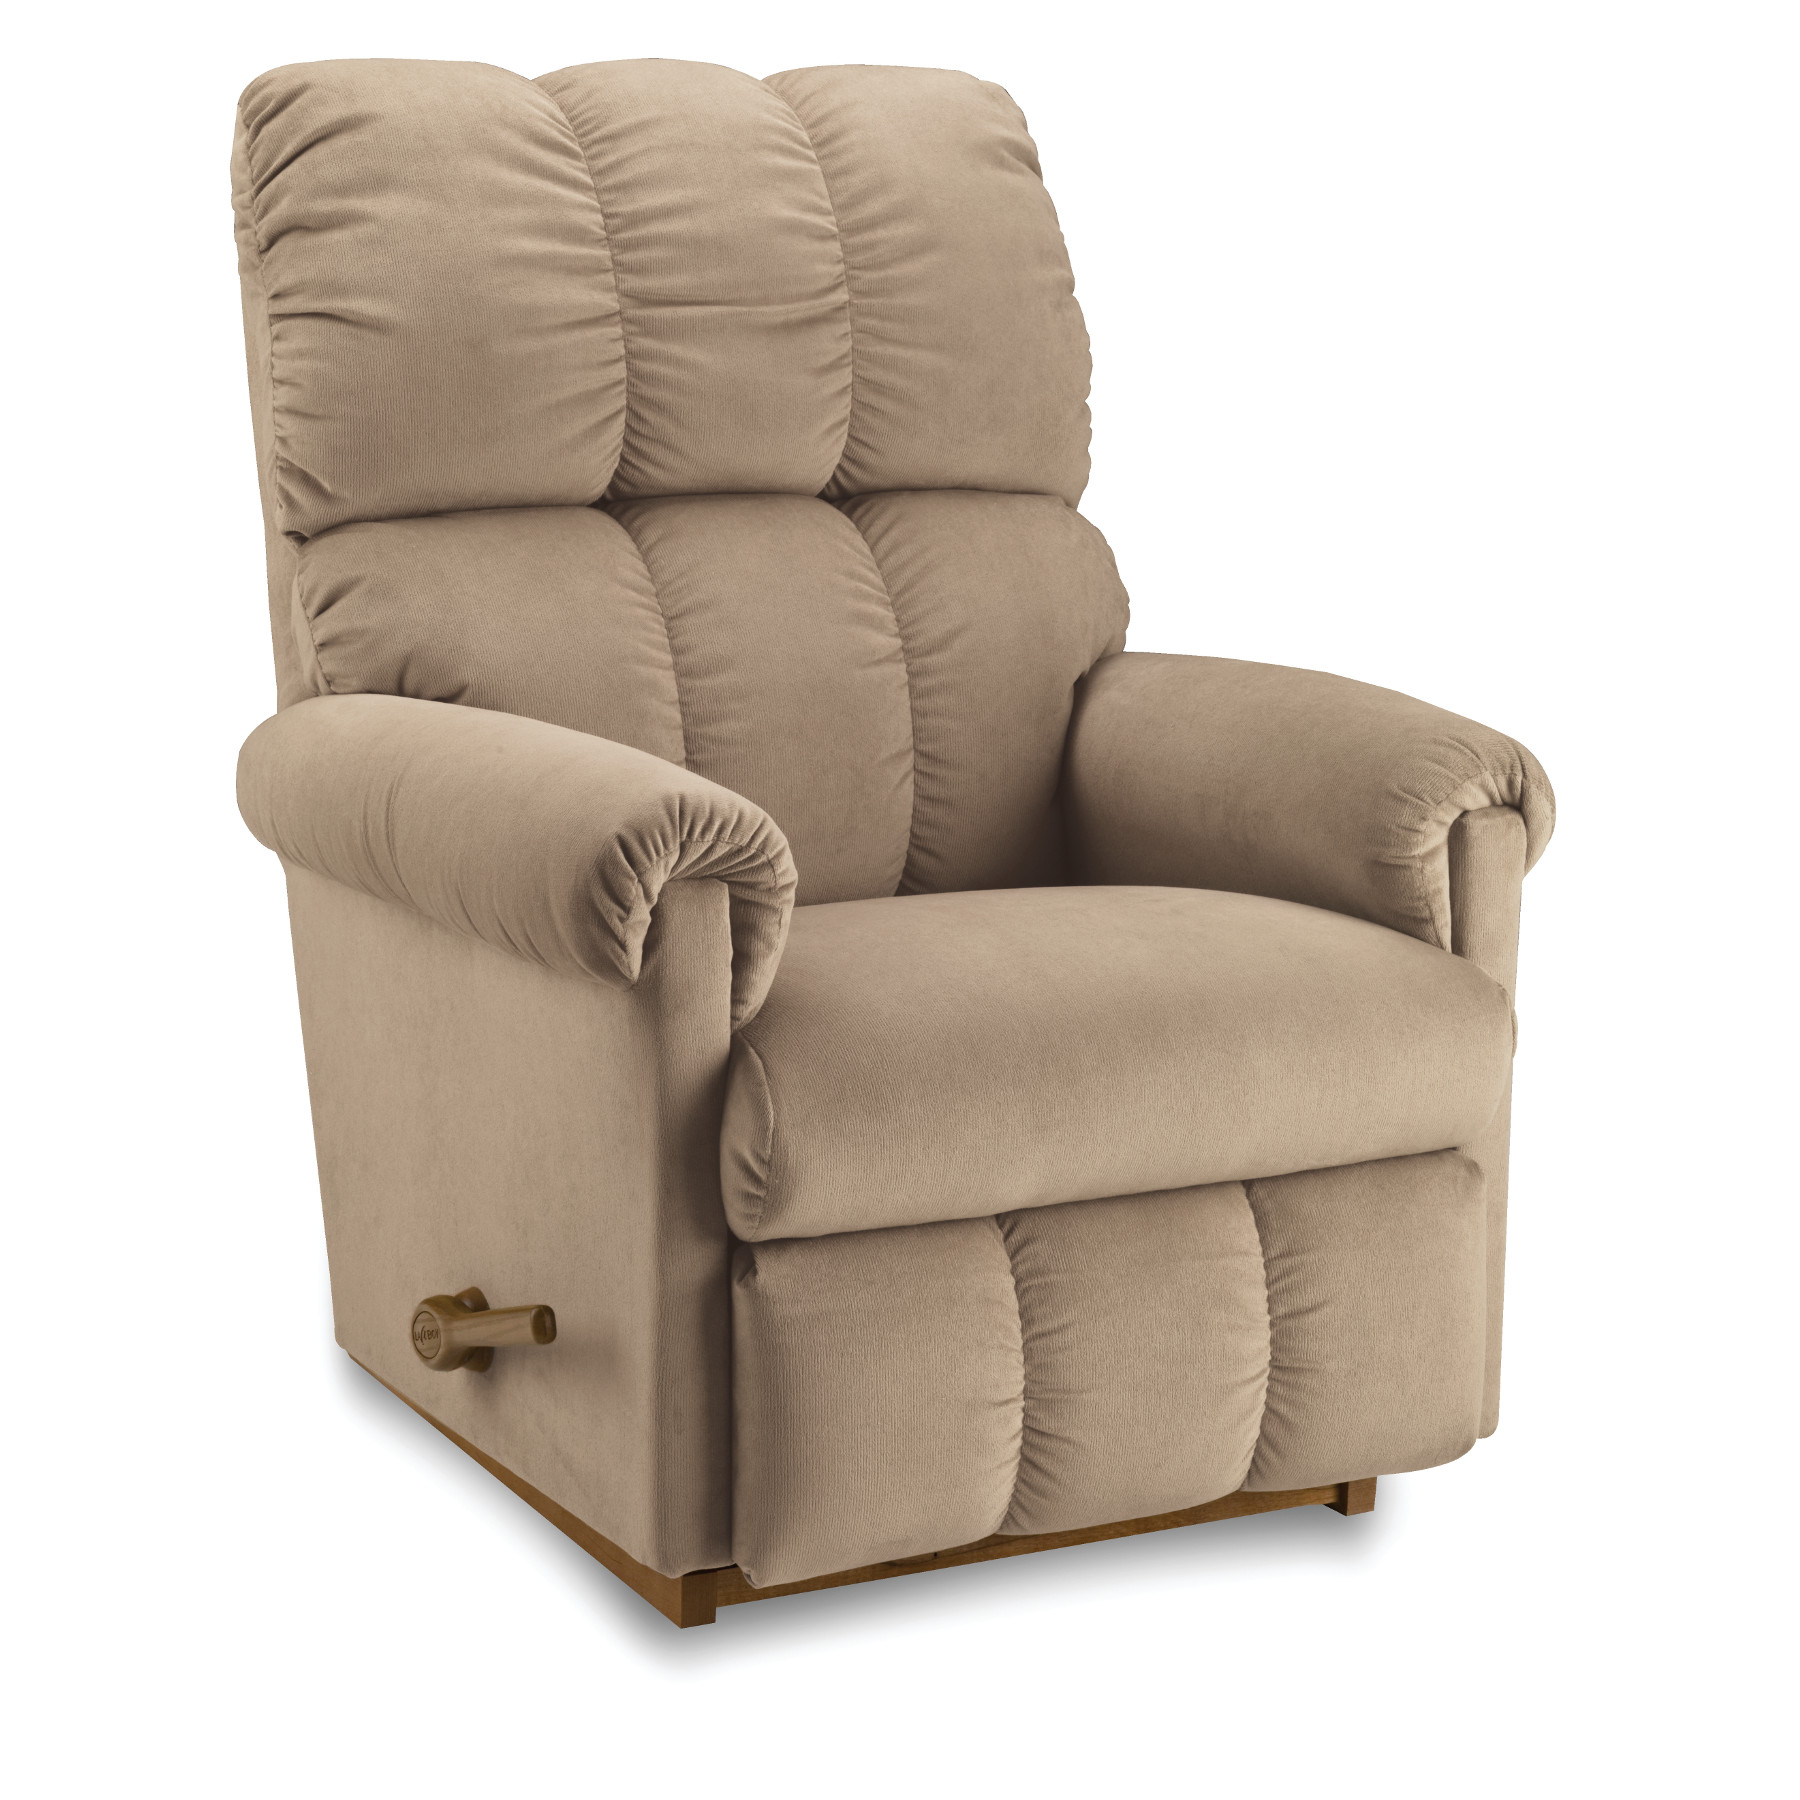 LaZBoy Aspen ReclinaRocker Beige  Tan  Sears